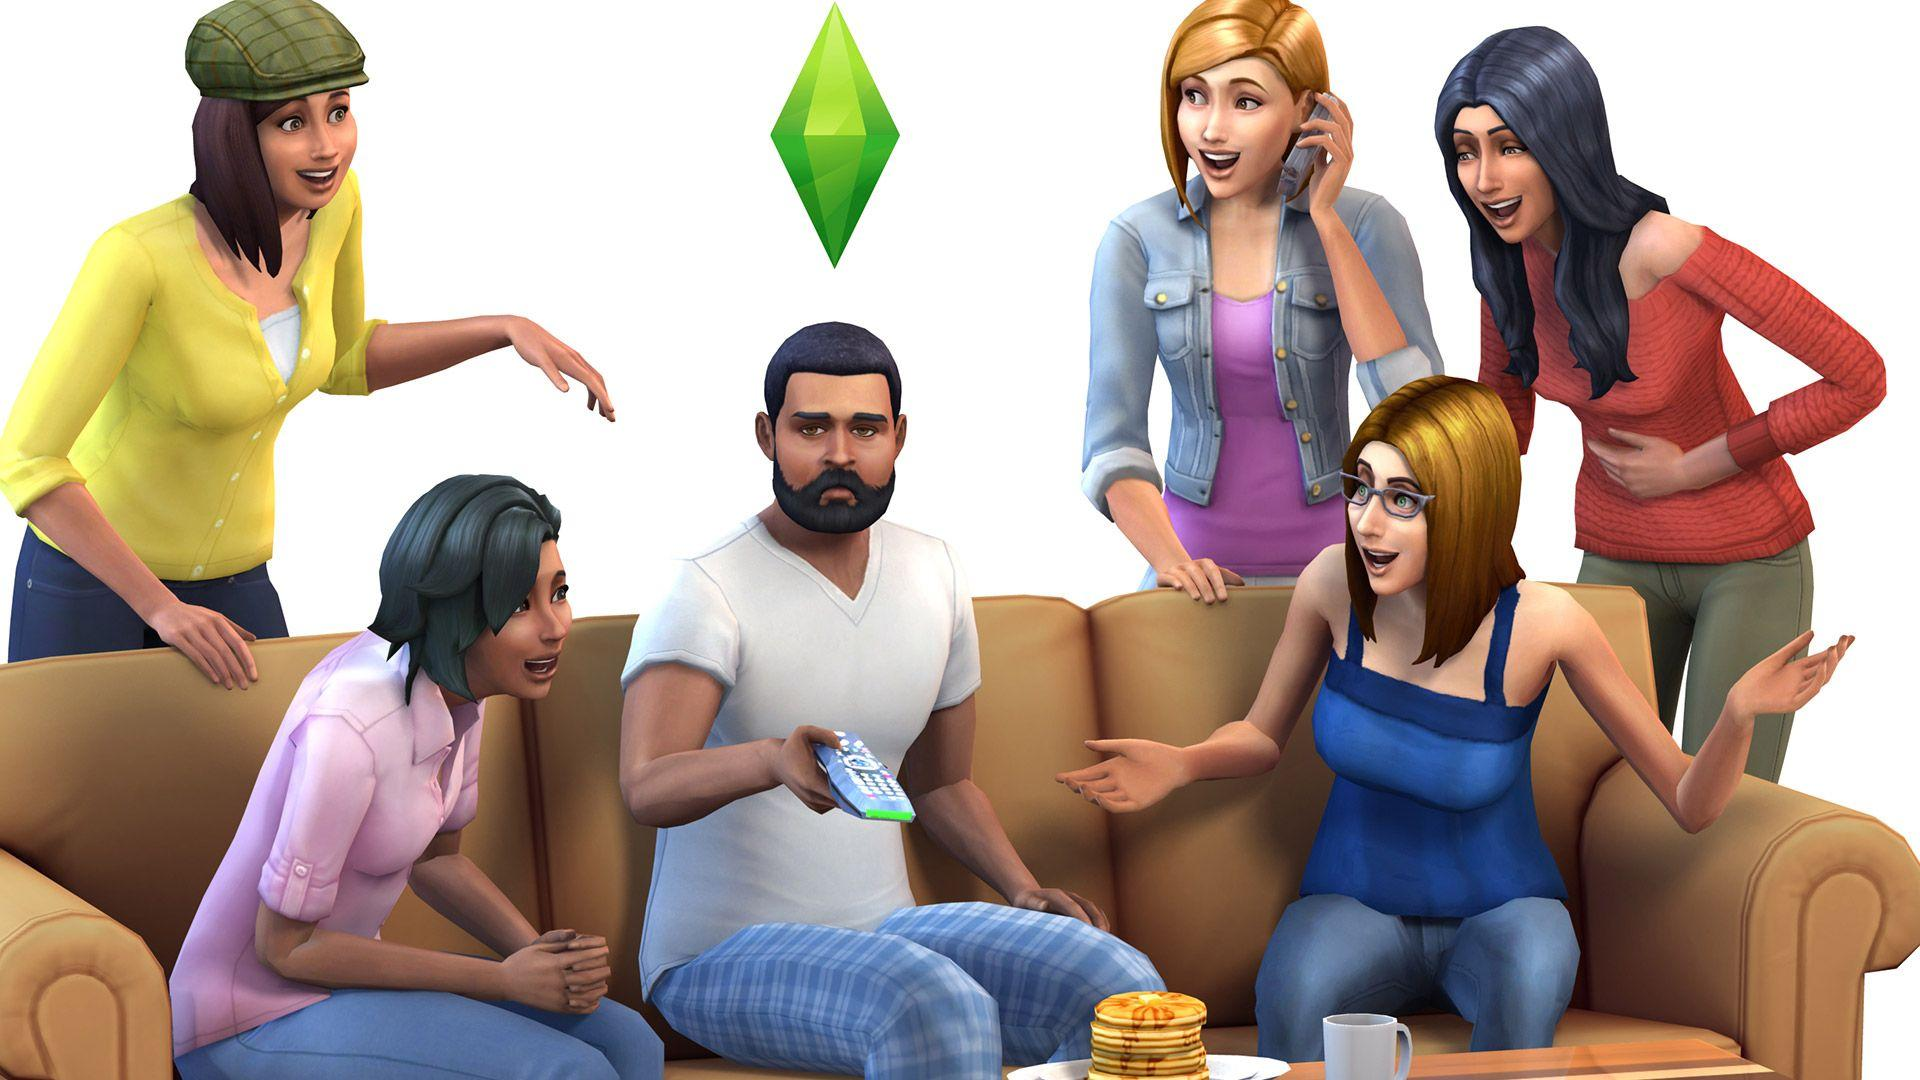 The Sims 4 wallpapers 2